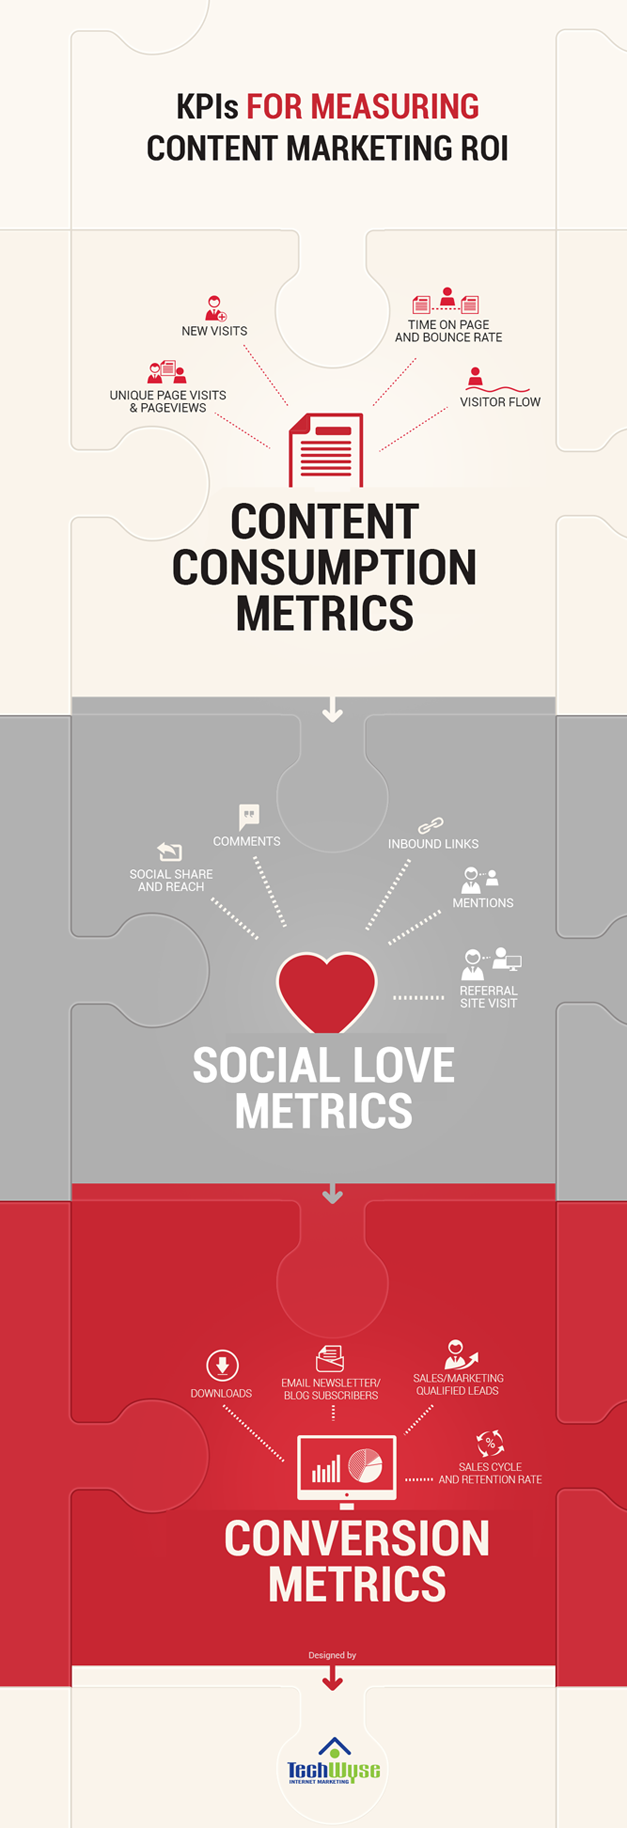 KPIs for measuring content marketing ROI